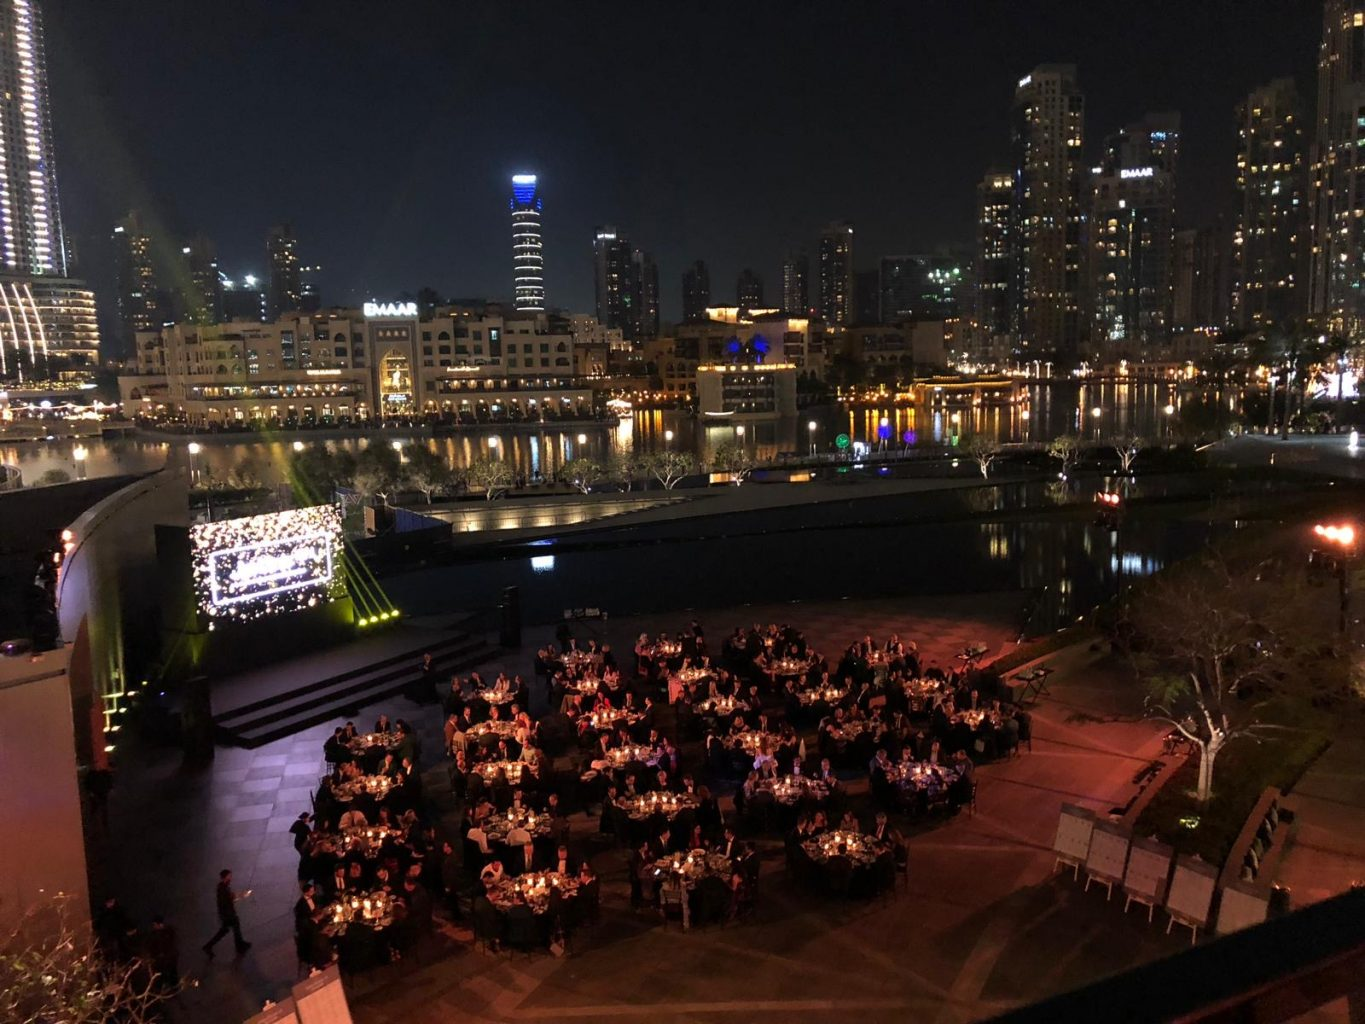 Dubai gala dinner Armani terrace 3 - Gala Dinner on the Armani Terrace, Dubai